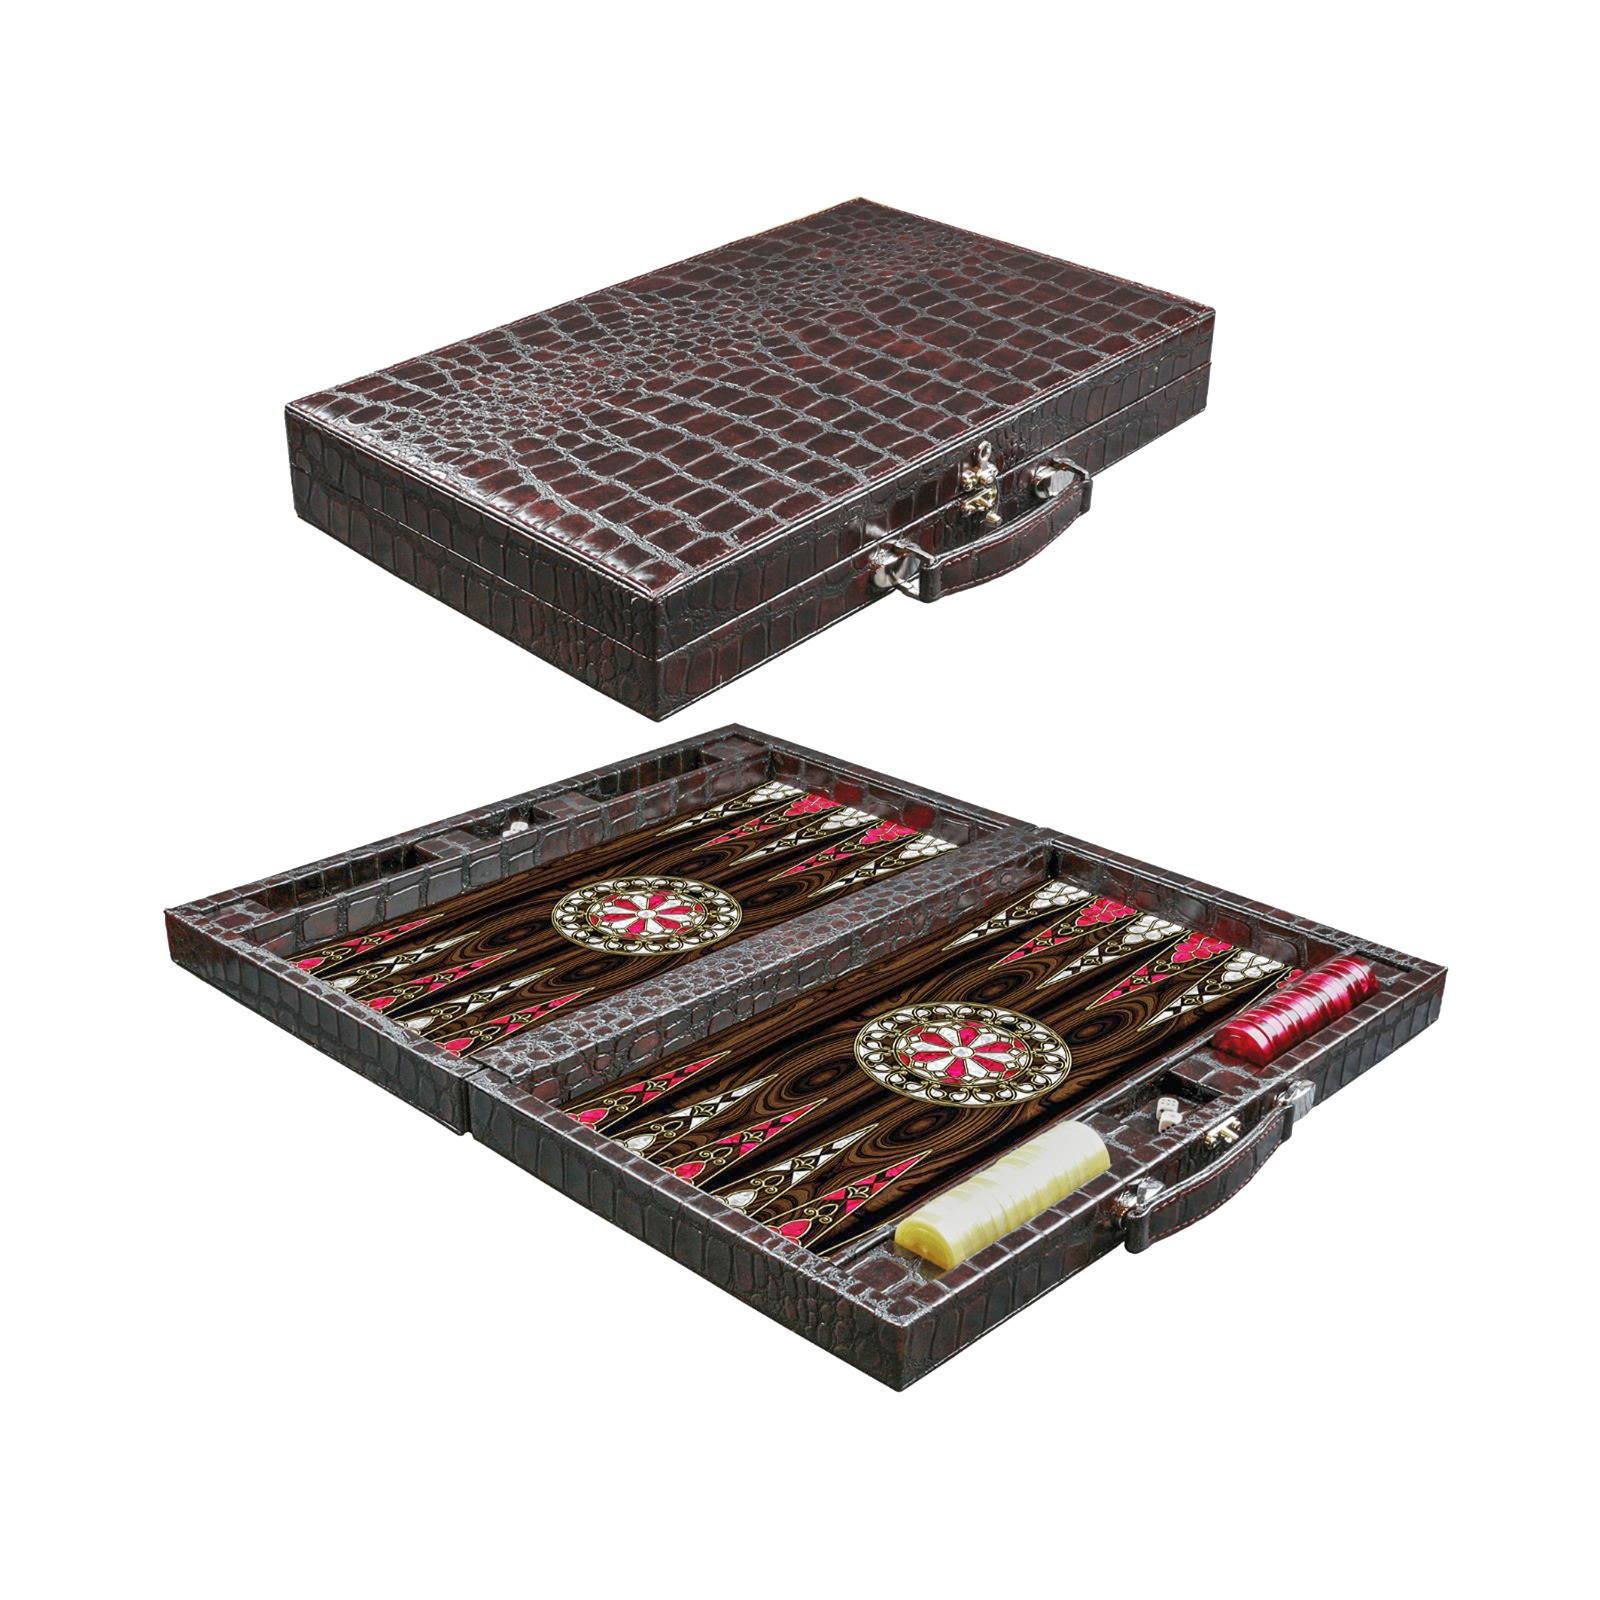 Buy Eser Elegance Leather Covered Backgammon Set